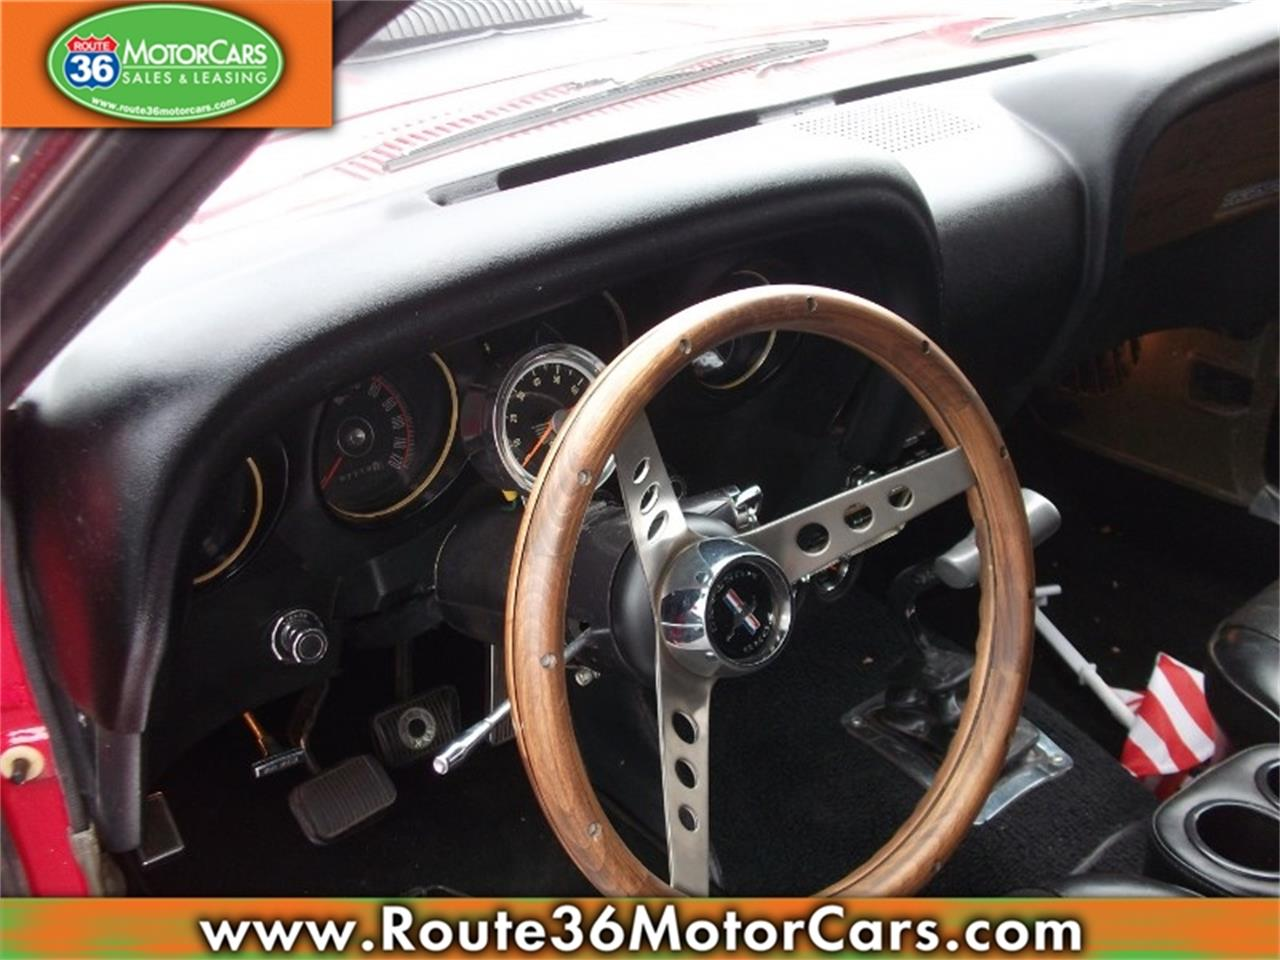 Large Picture of 1970 Ford Mustang located in Ohio - $69,975.00 Offered by Route 36 Motor Cars - PBL3